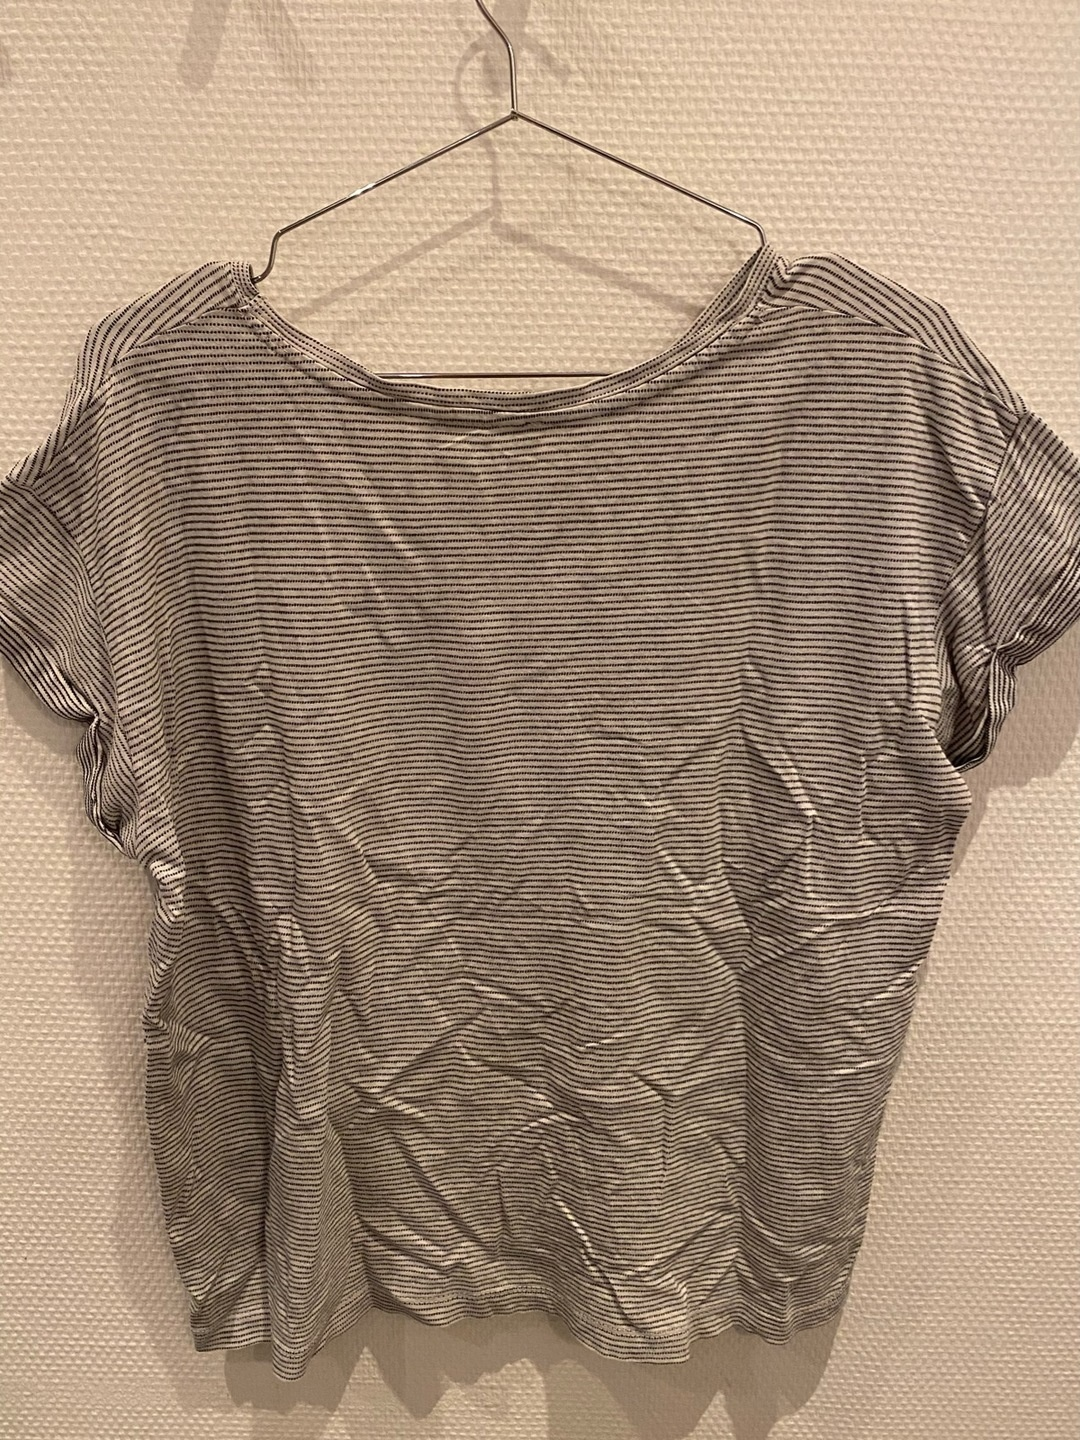 Women's tops & t-shirts - PIECES photo 3